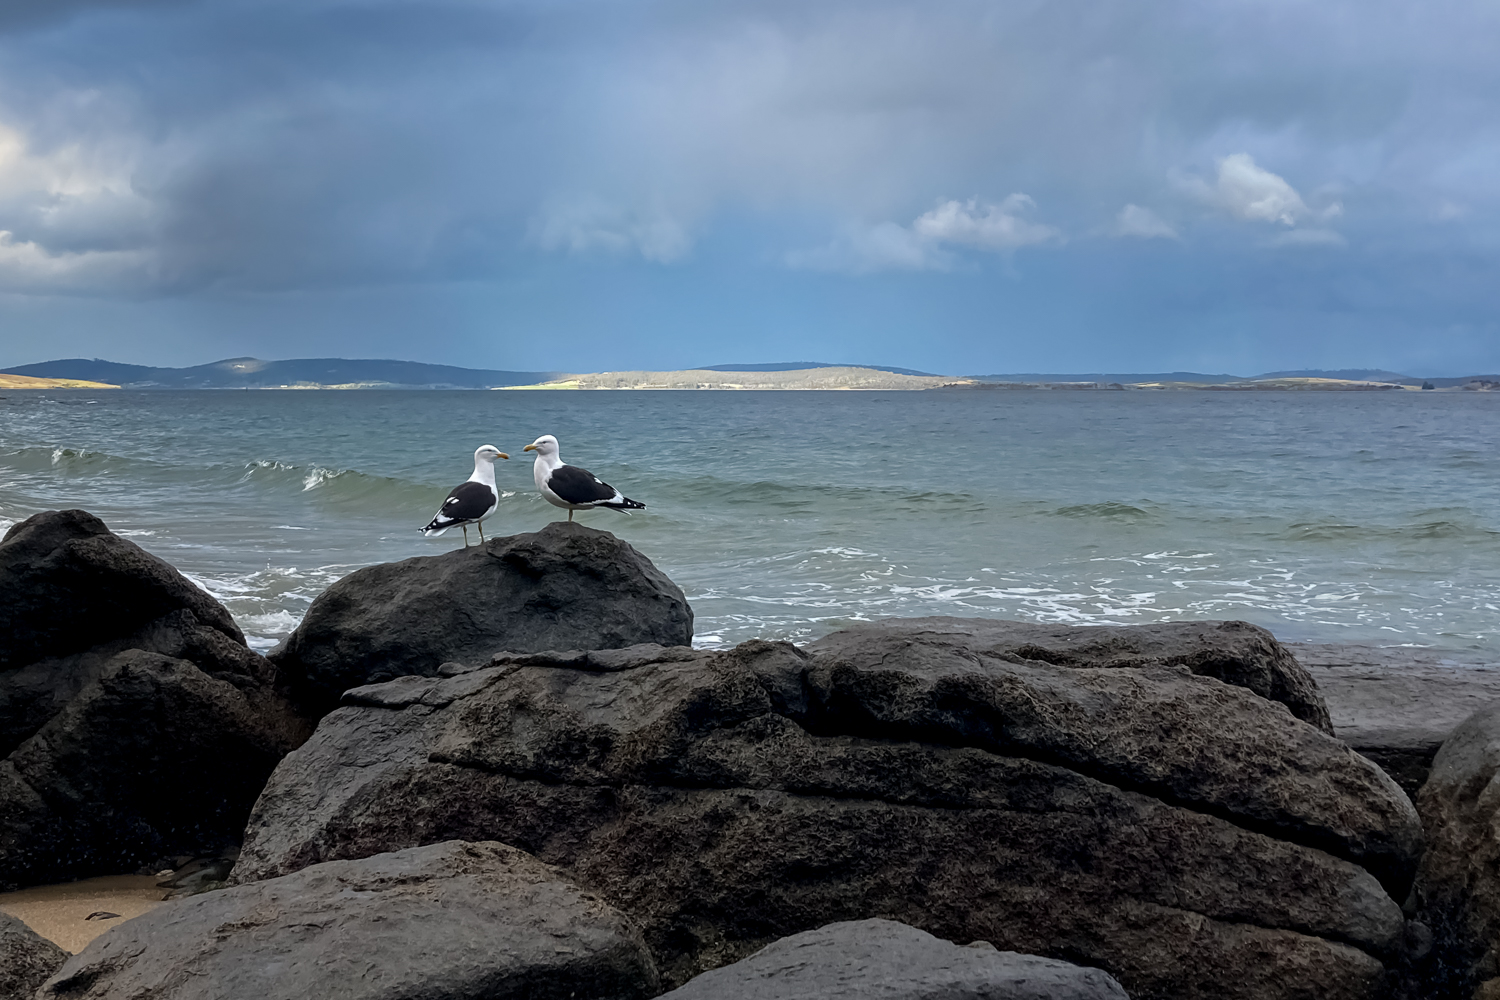 Two gulls on a rock at the beach